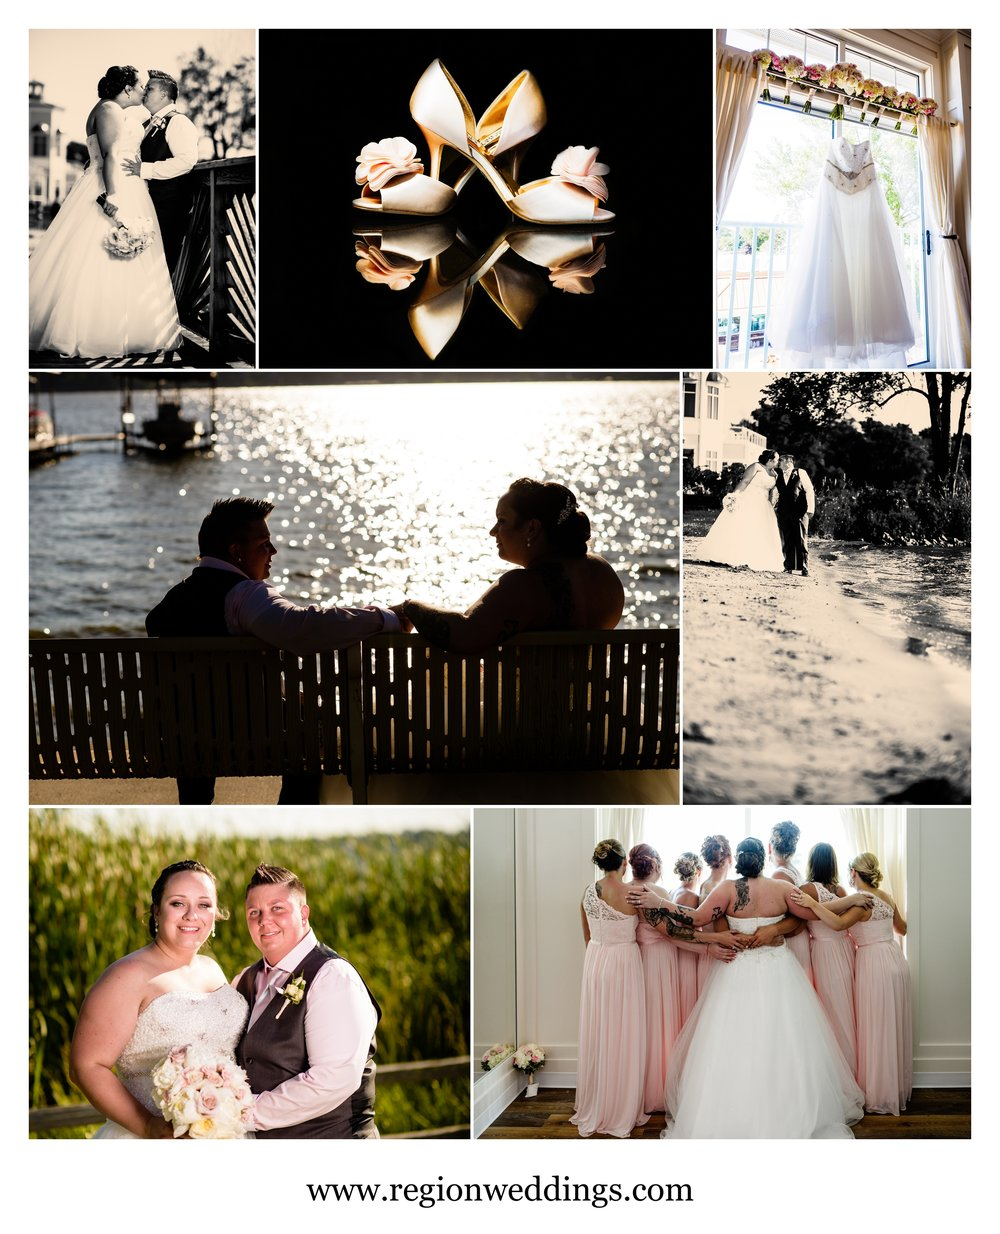 Summer 2016 wedding at Lighthouse Restaurant in Cedar Lake, Indiana.